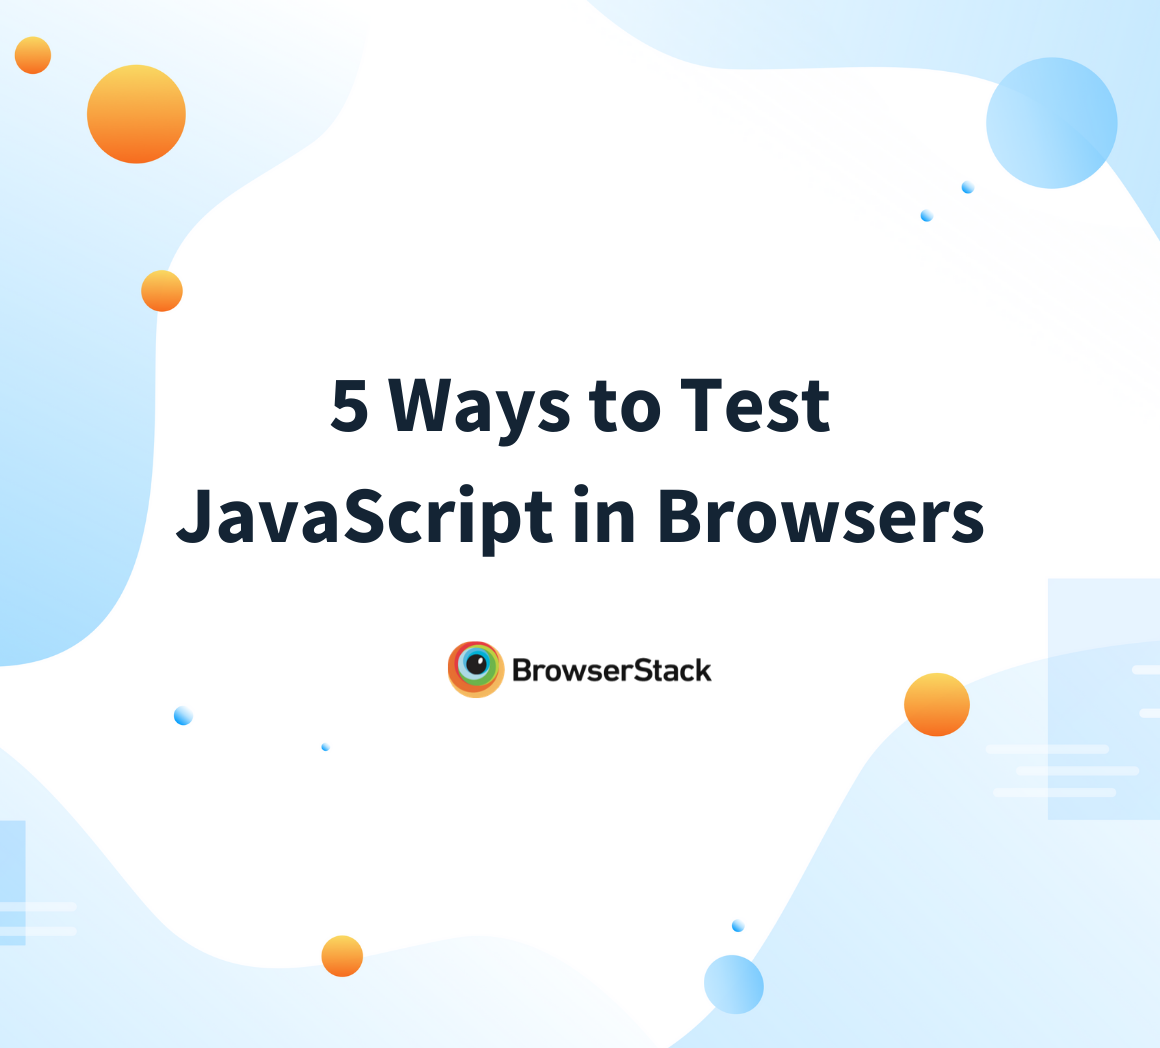 5 Ways to Test Javascript in Browsers